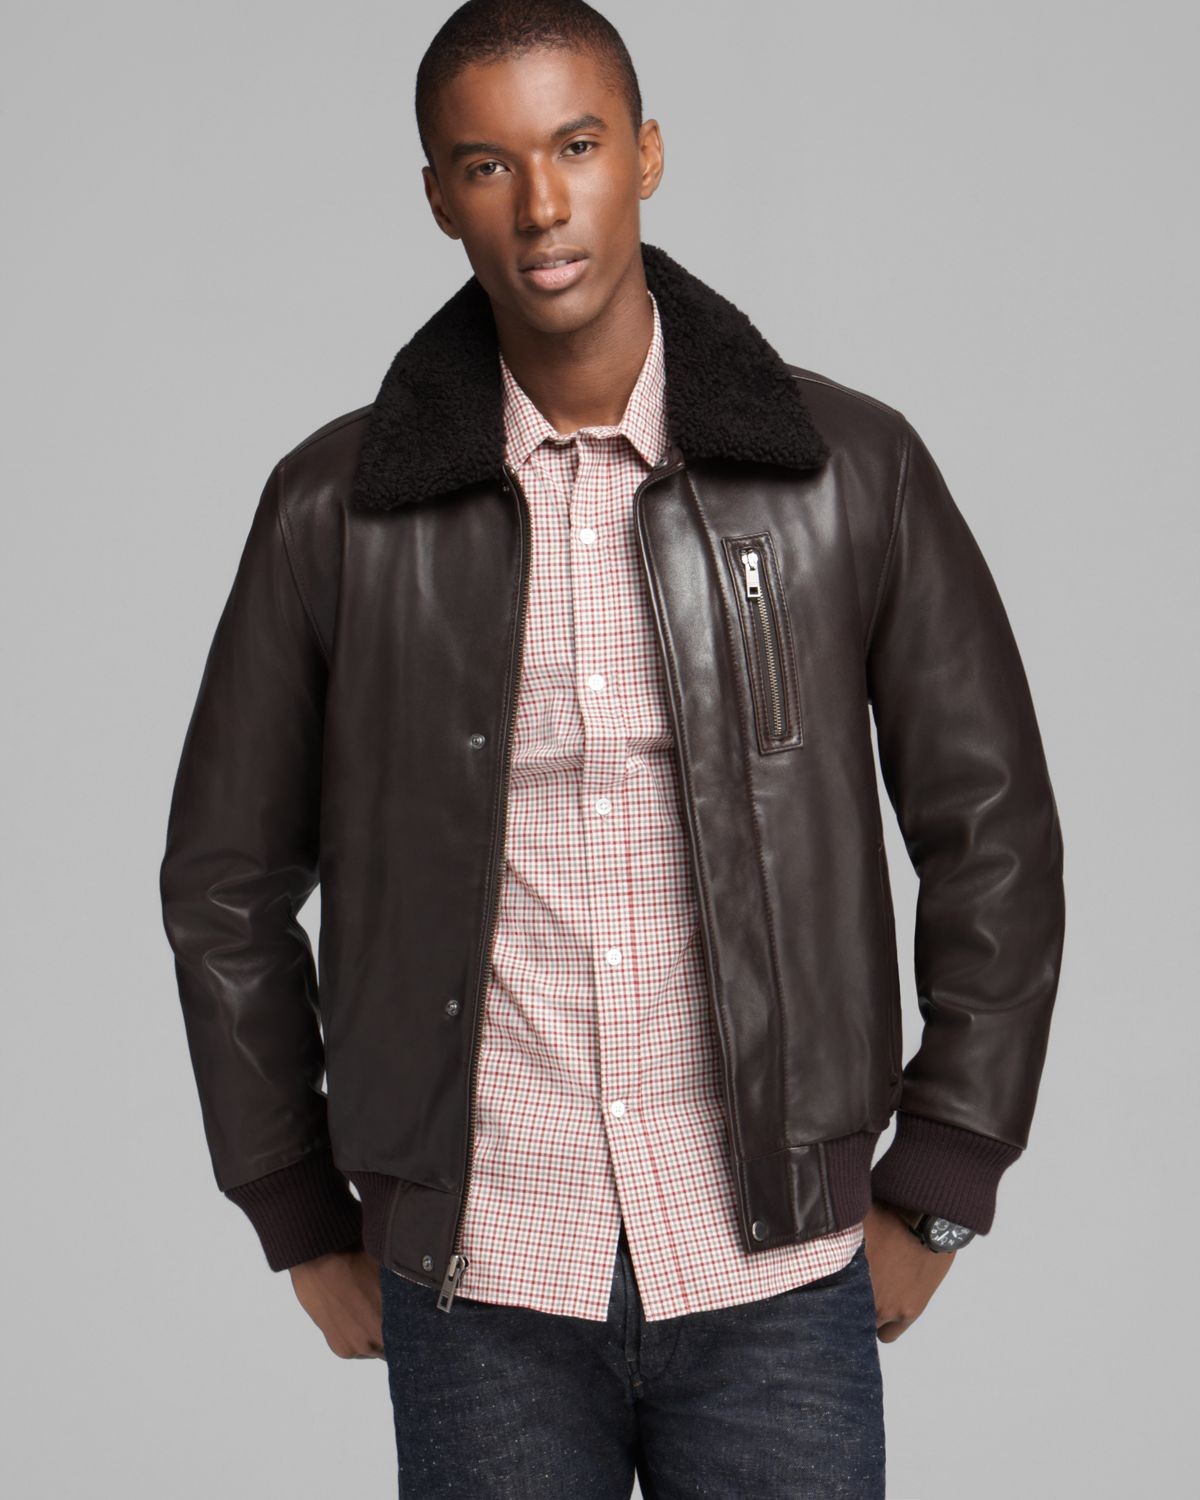 7e622c197 Andrew marc leather jacket sale / Home button firefox